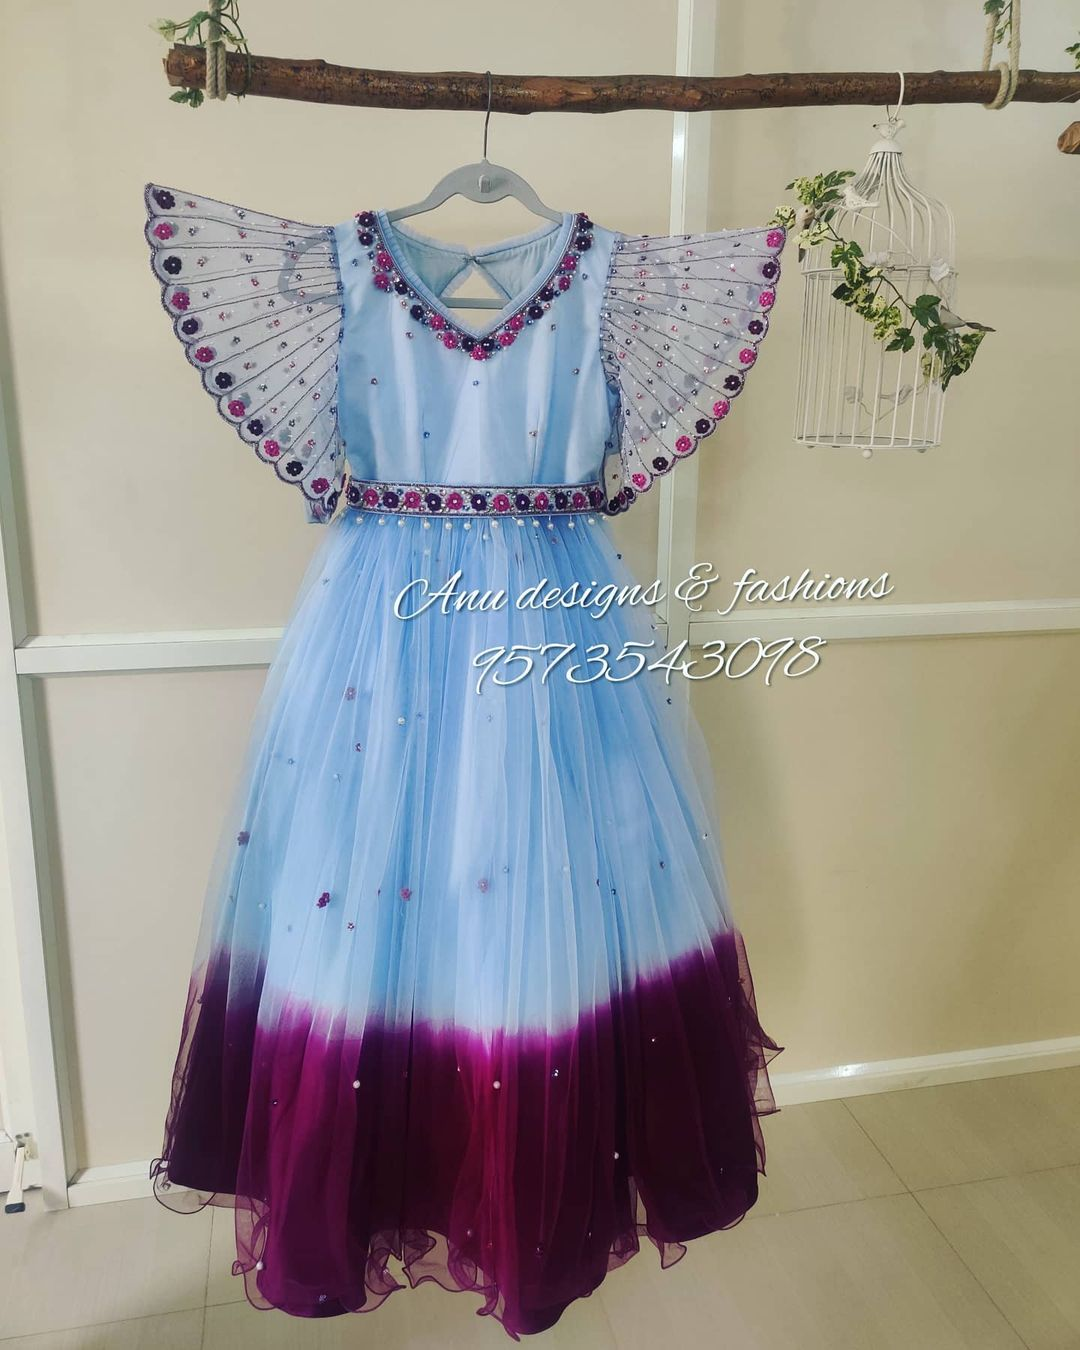 Gorgeous ice blue and wine color designer kids gown with ruffle sleeves. 2021-01-22